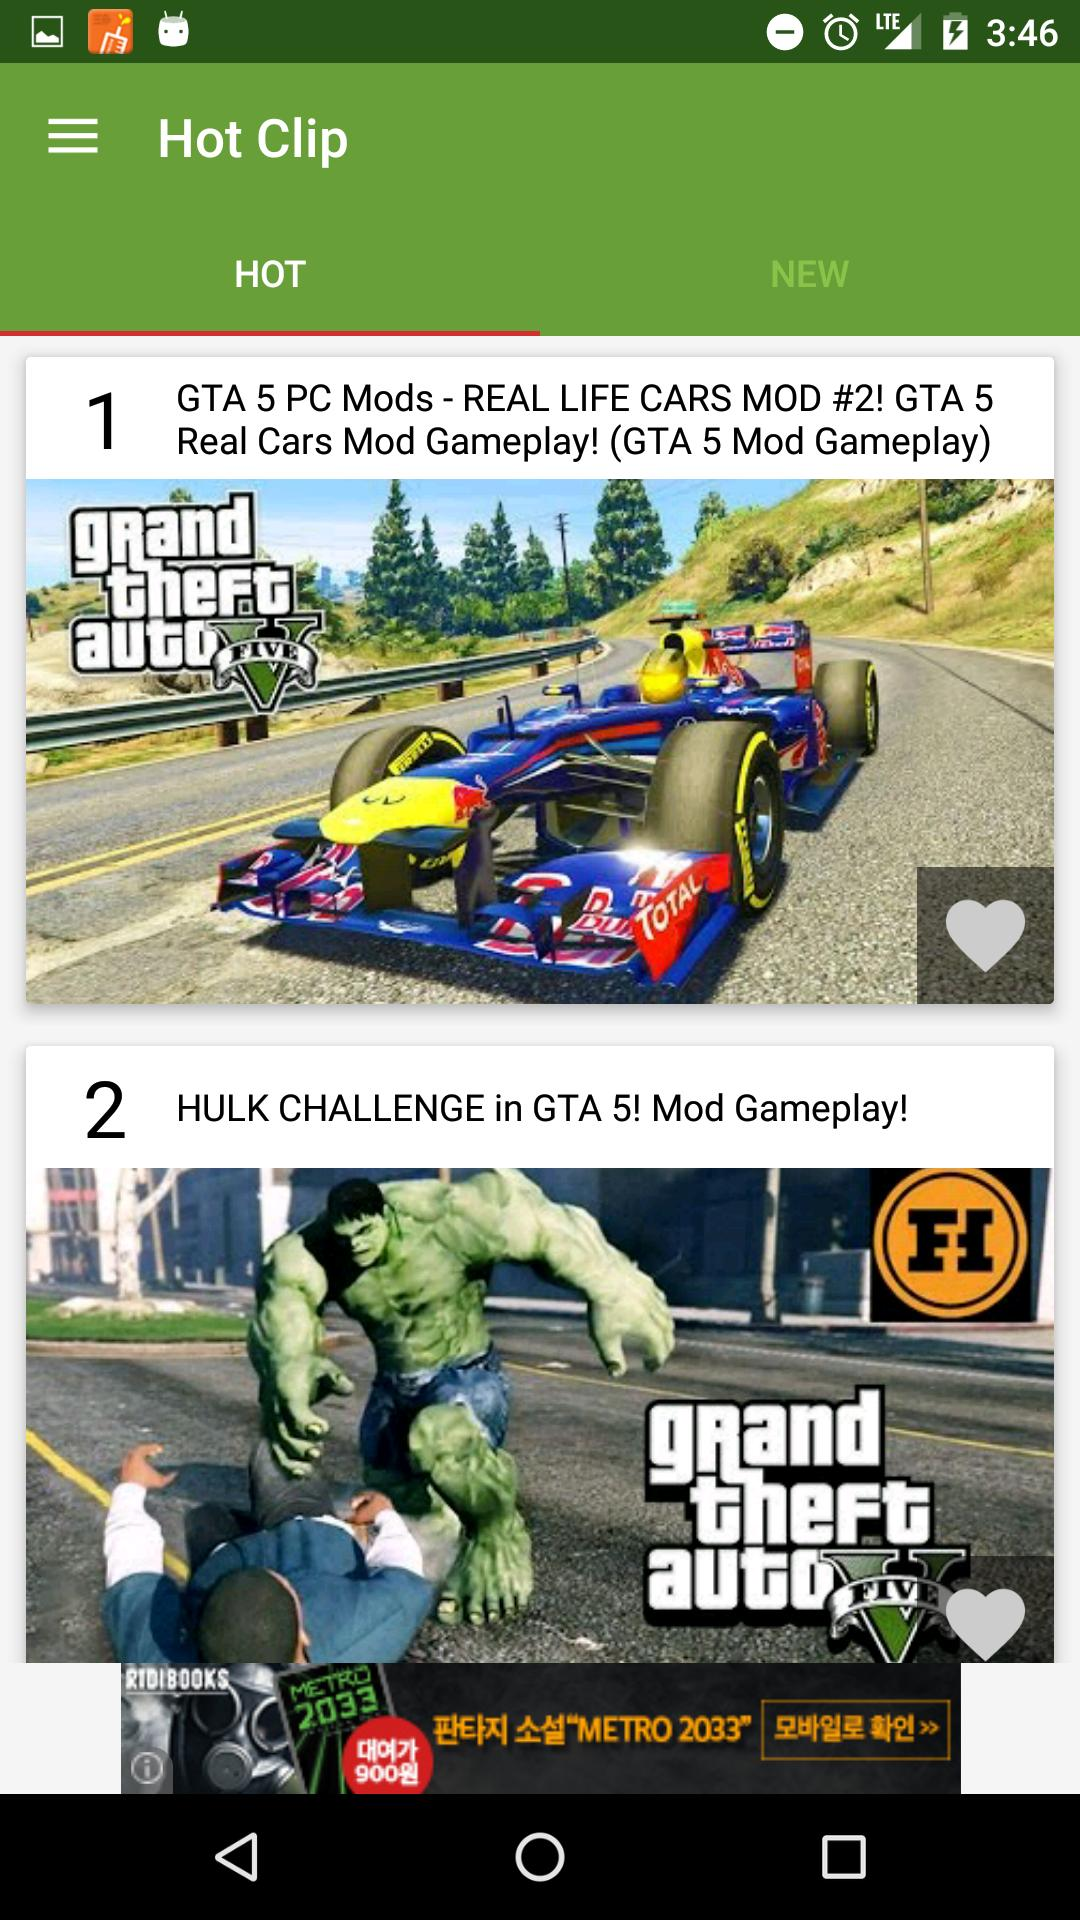 GTA TV - GTA video for Android - APK Download